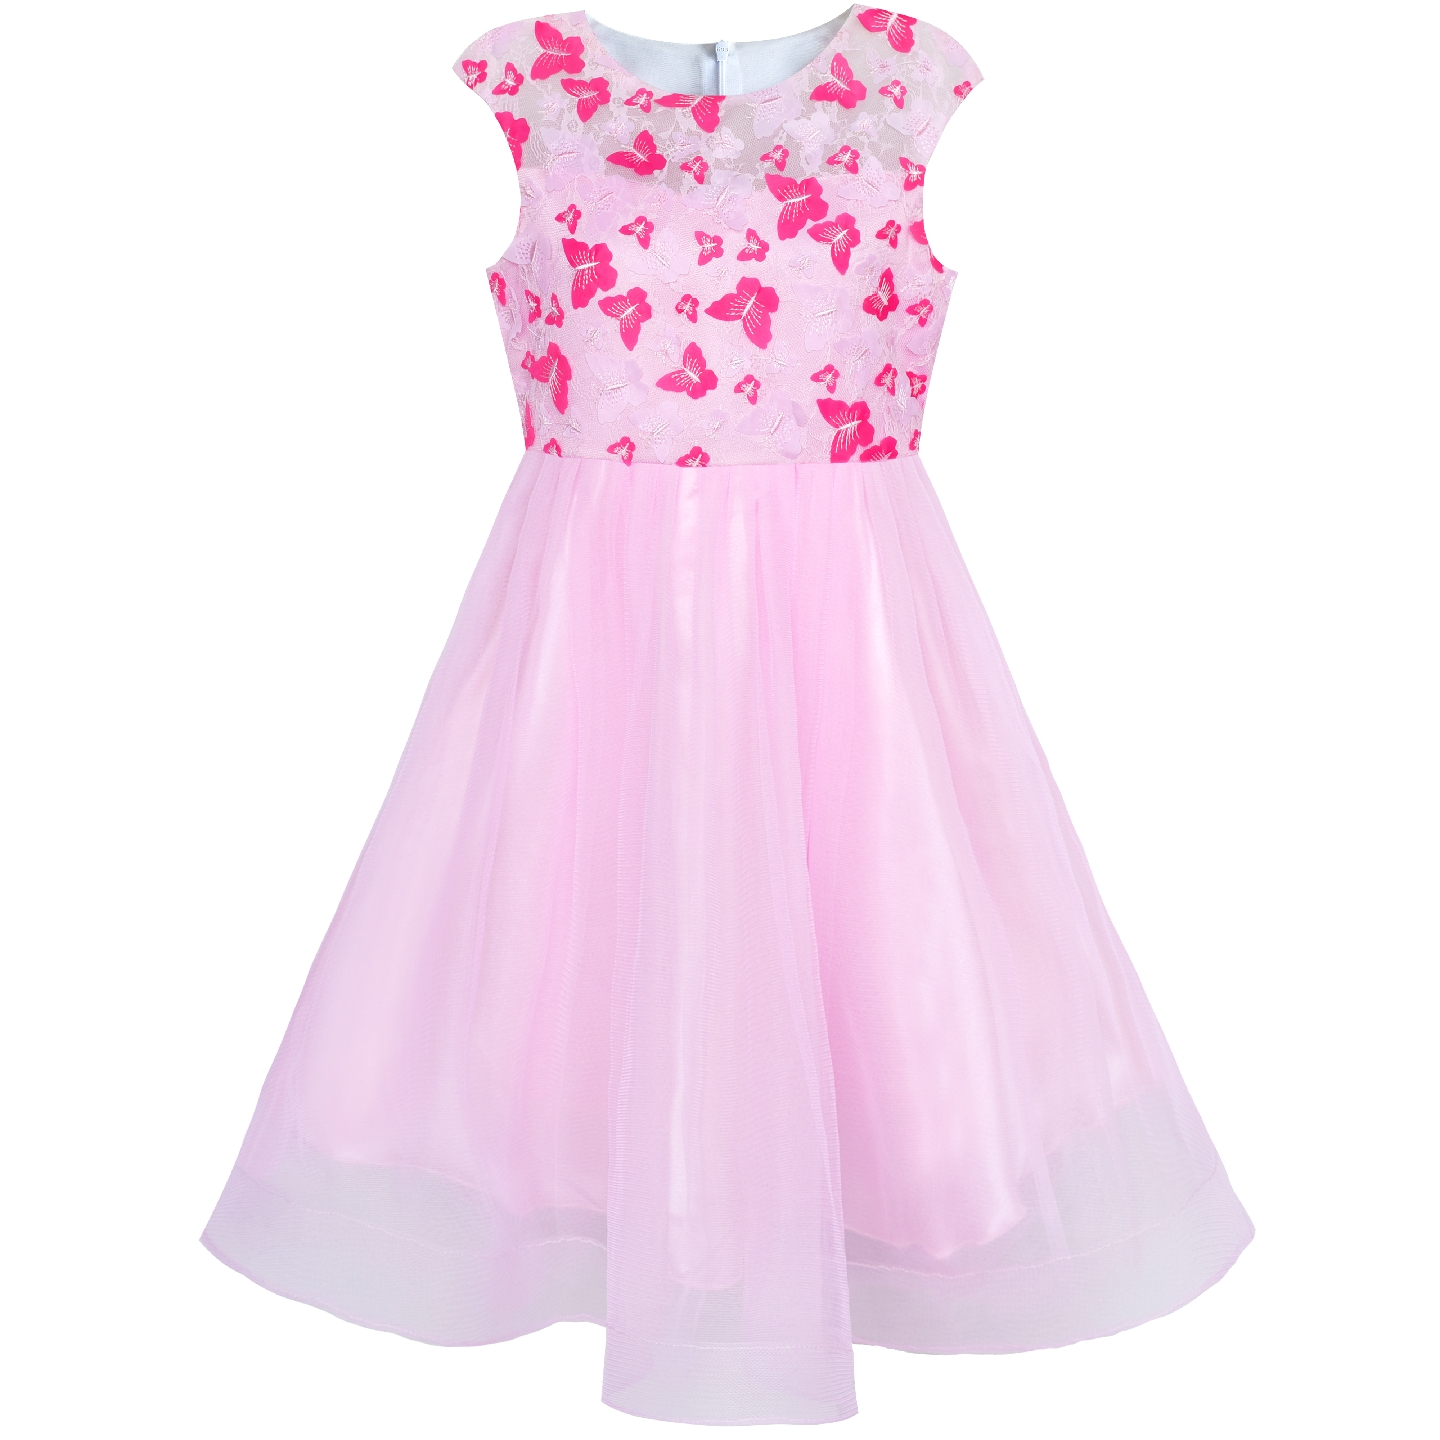 Flower Girl Dress Butterfly Pink Bridal Veil Wedding Bridesmaid 2019 Summer Princess Party Dresses Kids Clothes Pageant Sundress кружка bhp золотой каприз 350 мл